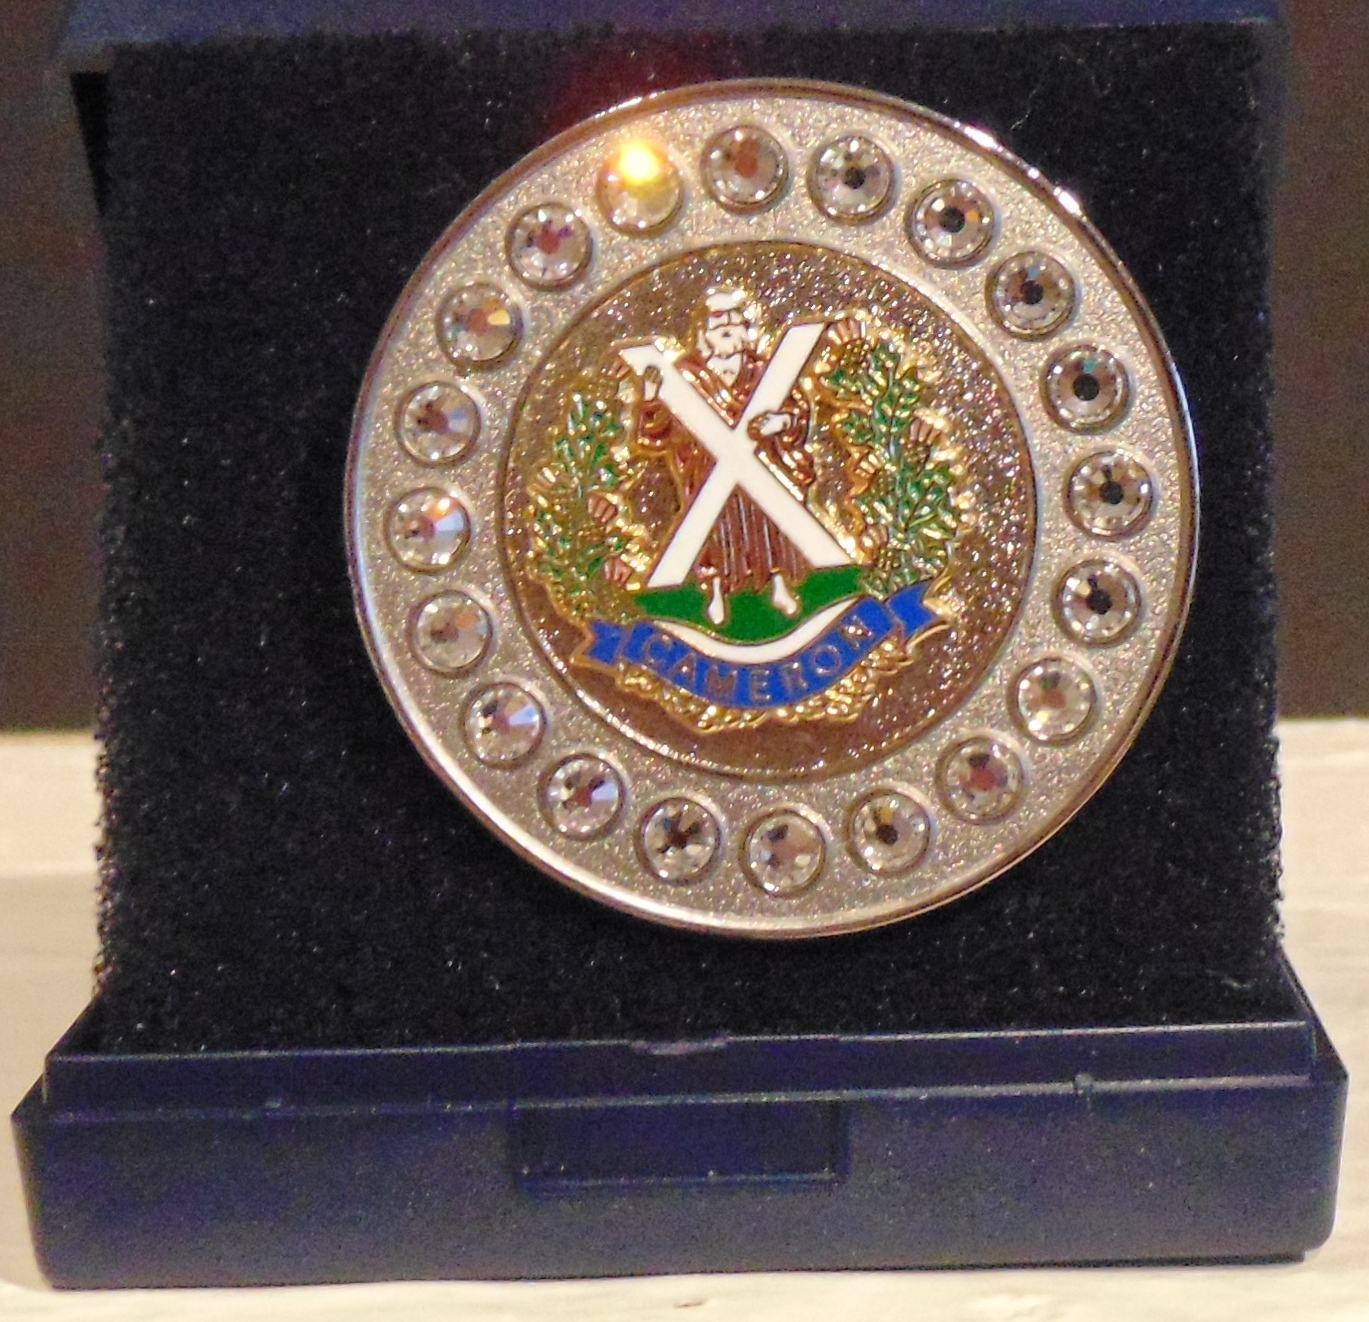 The Cameron Highlanders Regimental Brooch